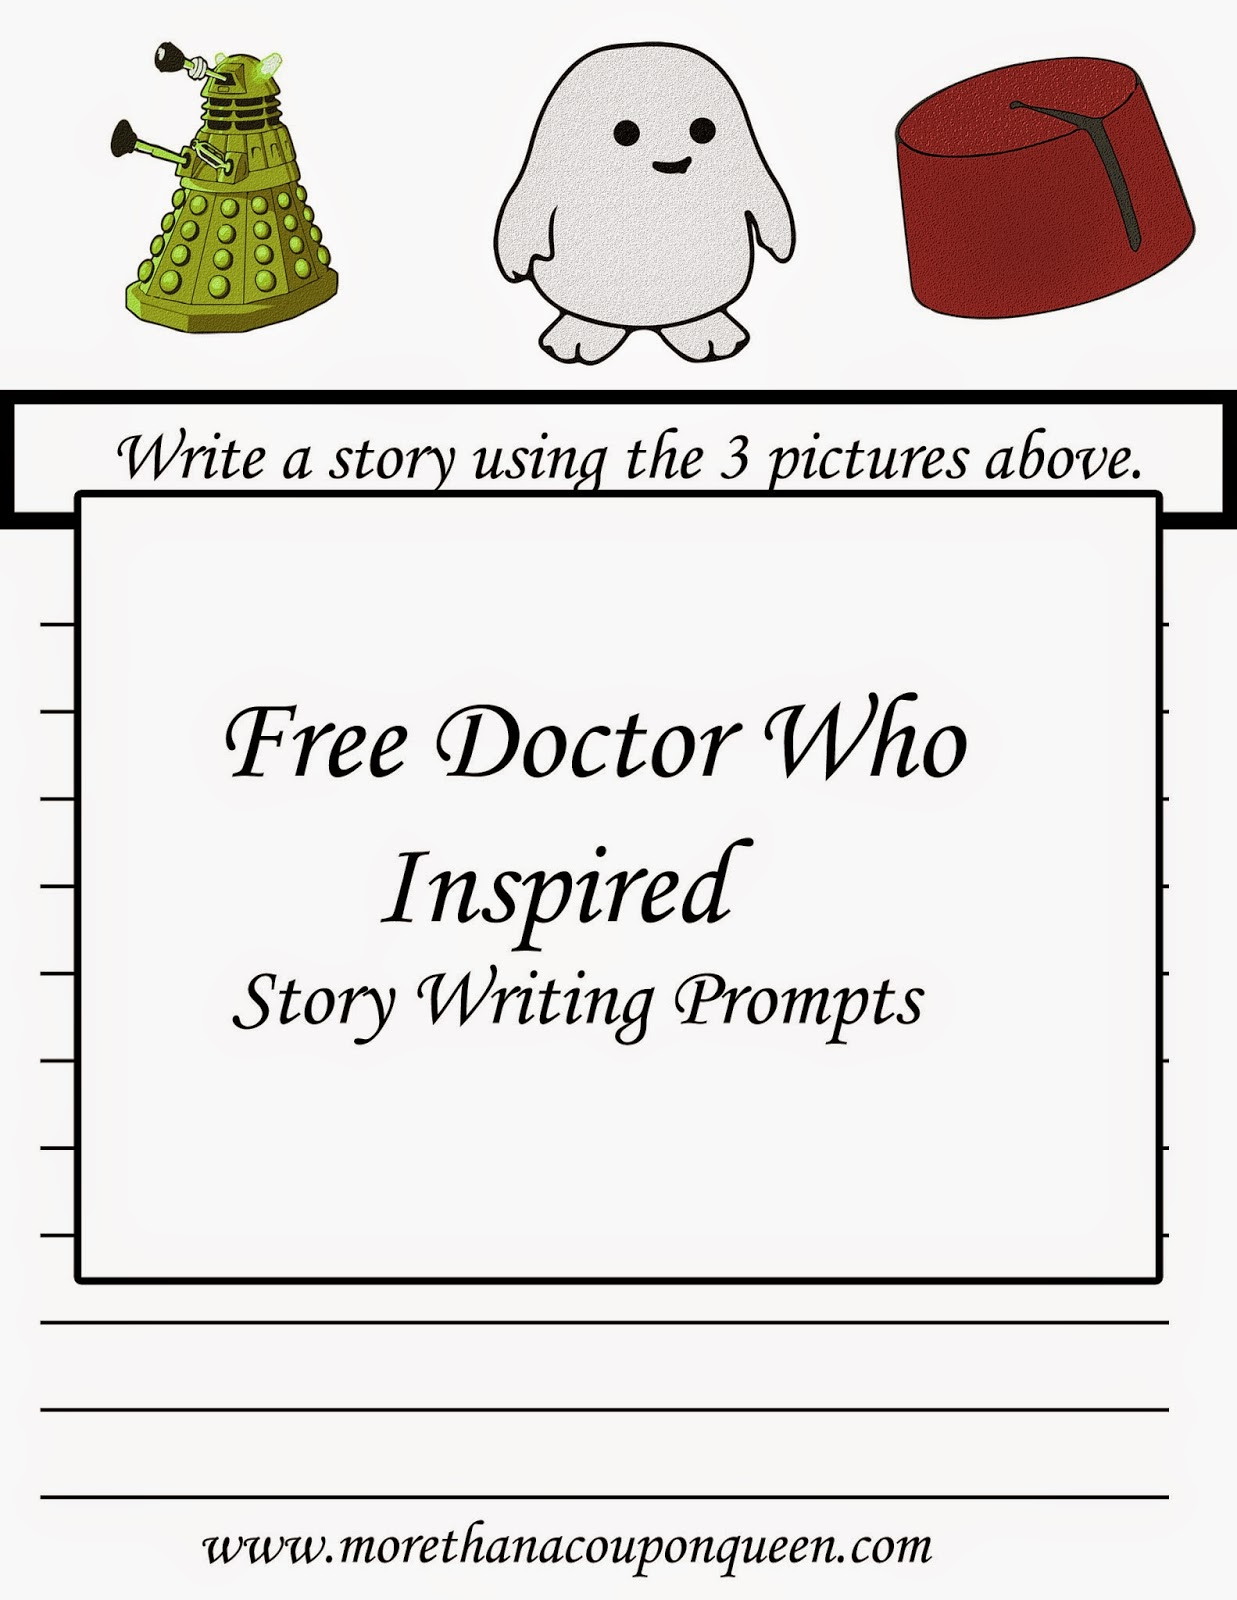 Free Doctor Who Inspired Story Prompts Printables